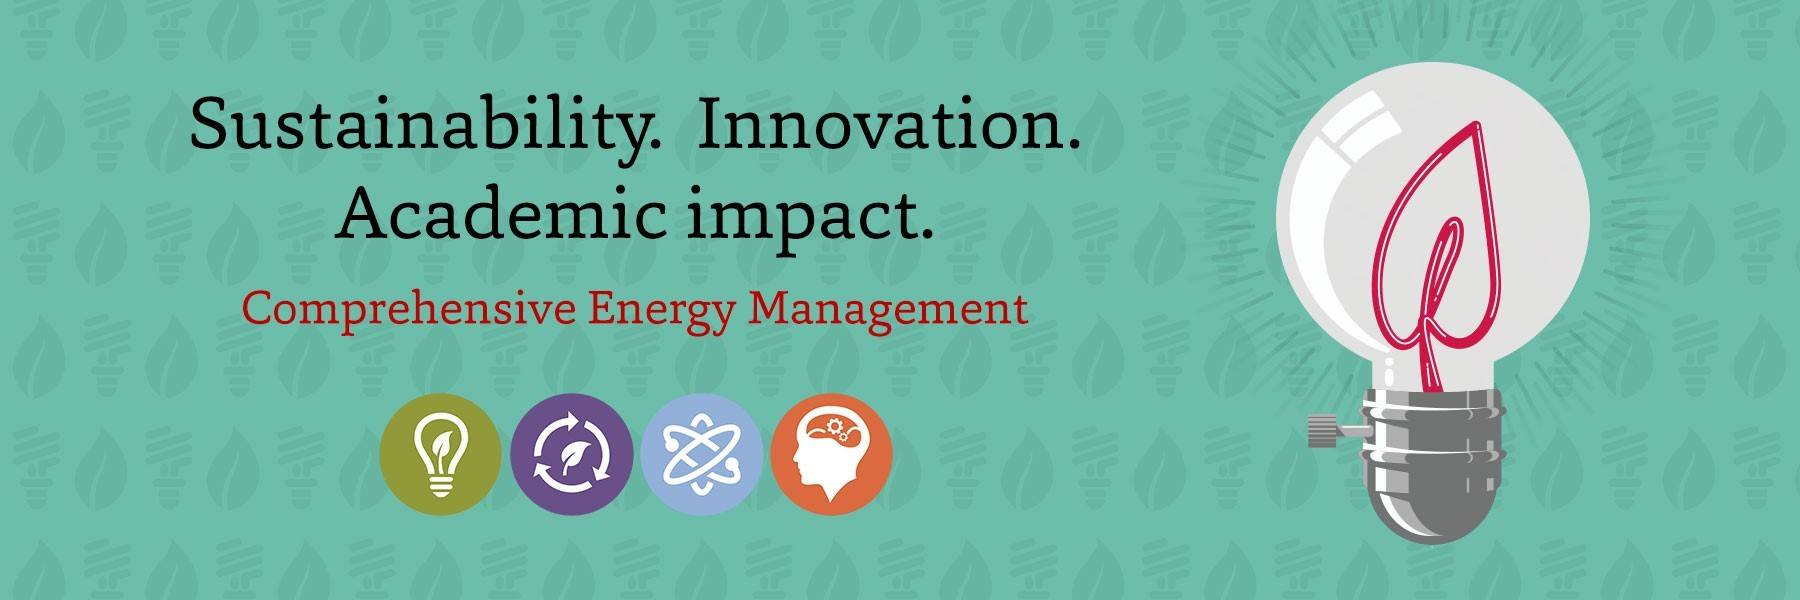 Sustainability. Innovation. Academic impact.